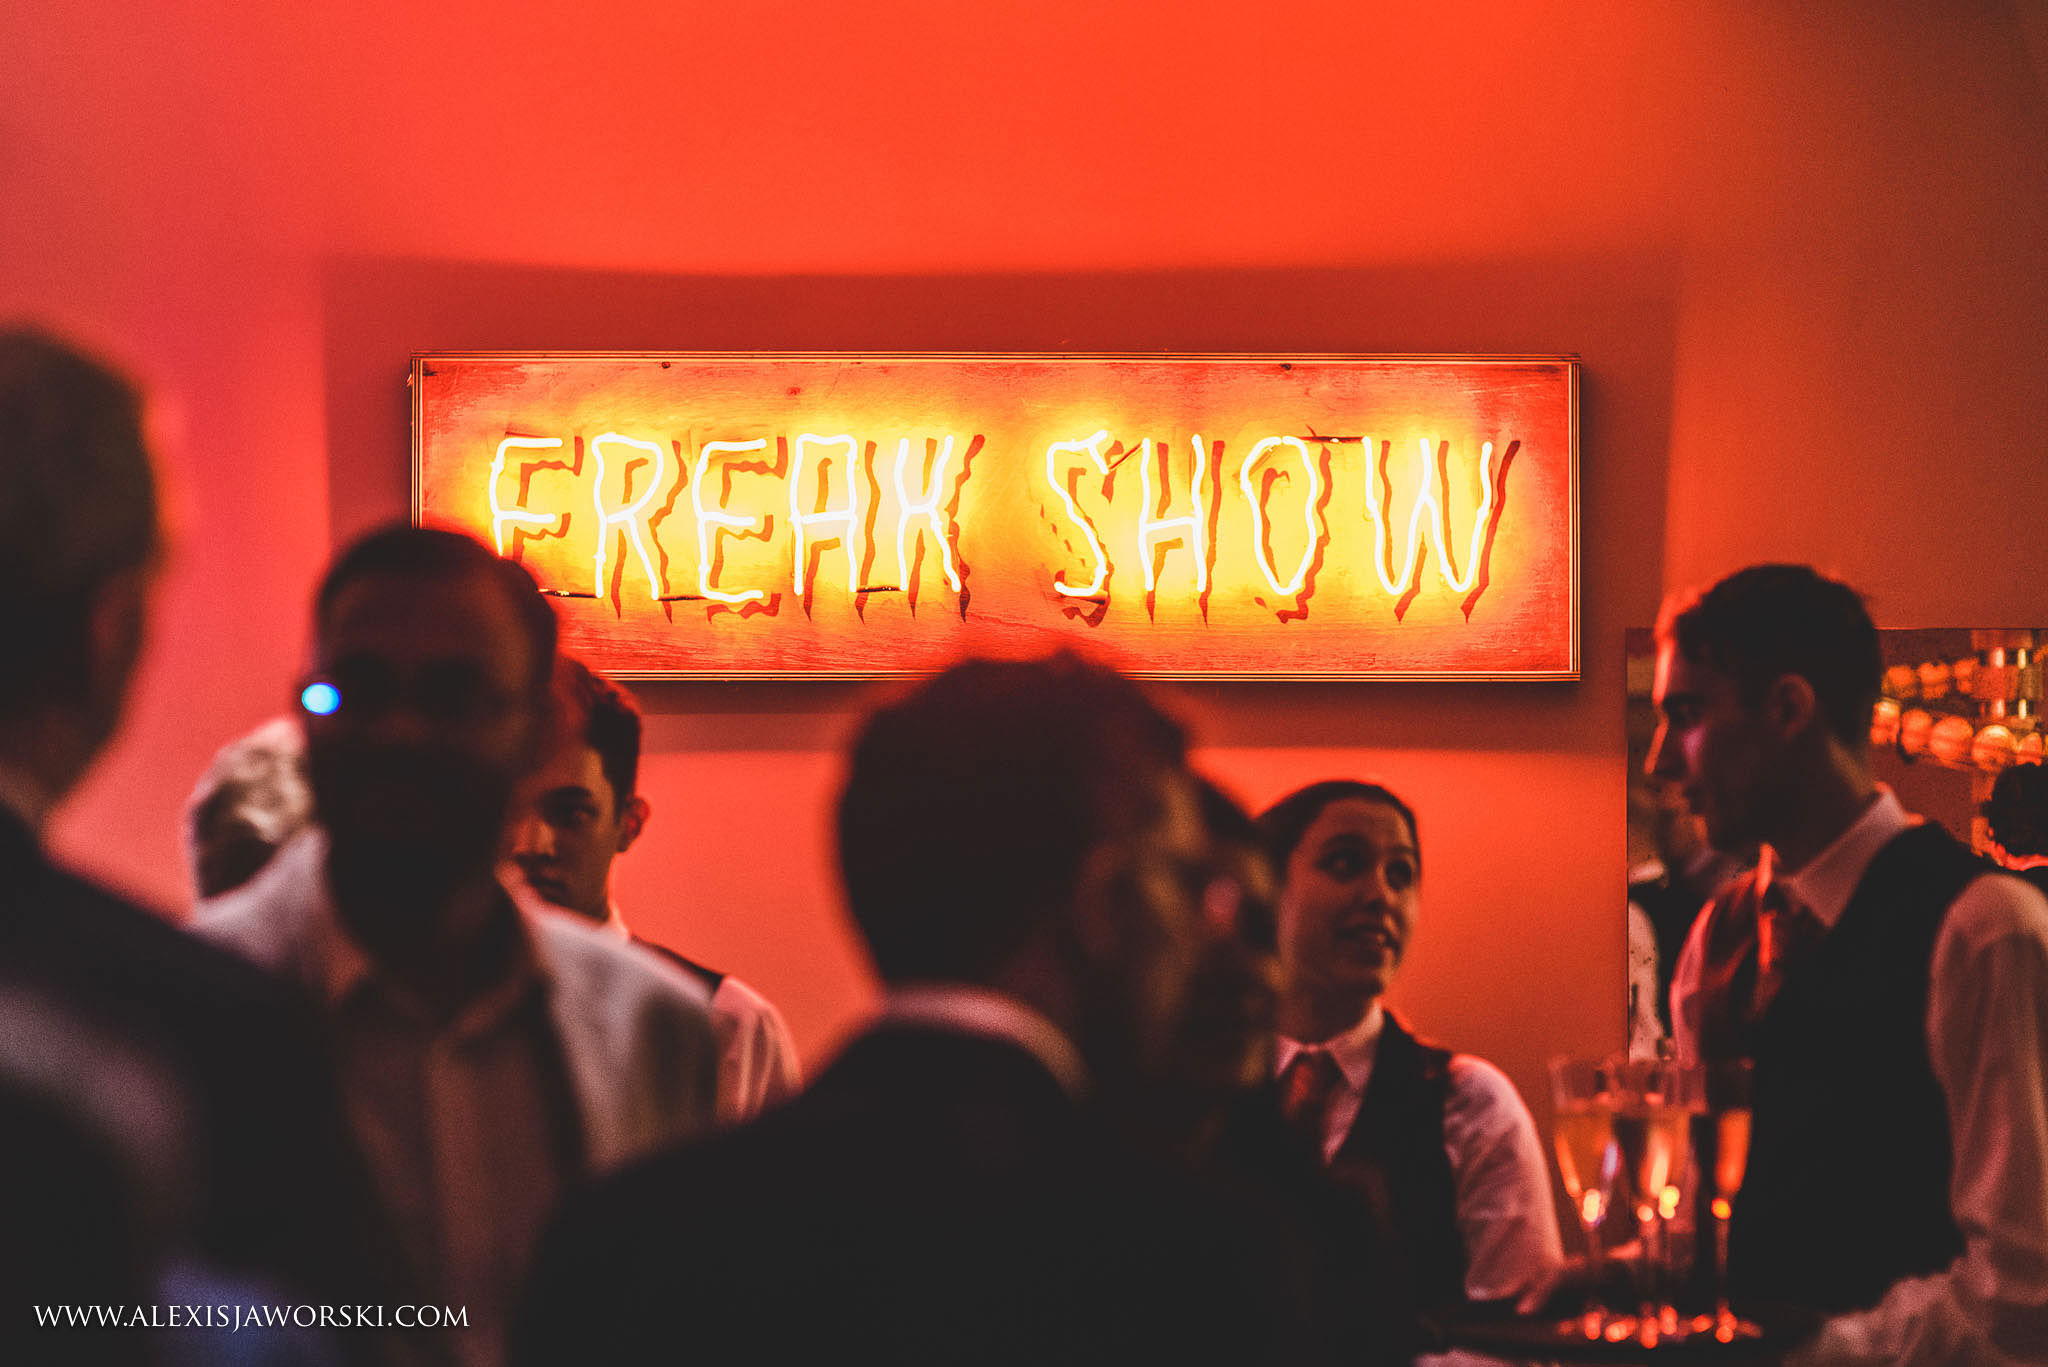 Freak Show image at the Hotel